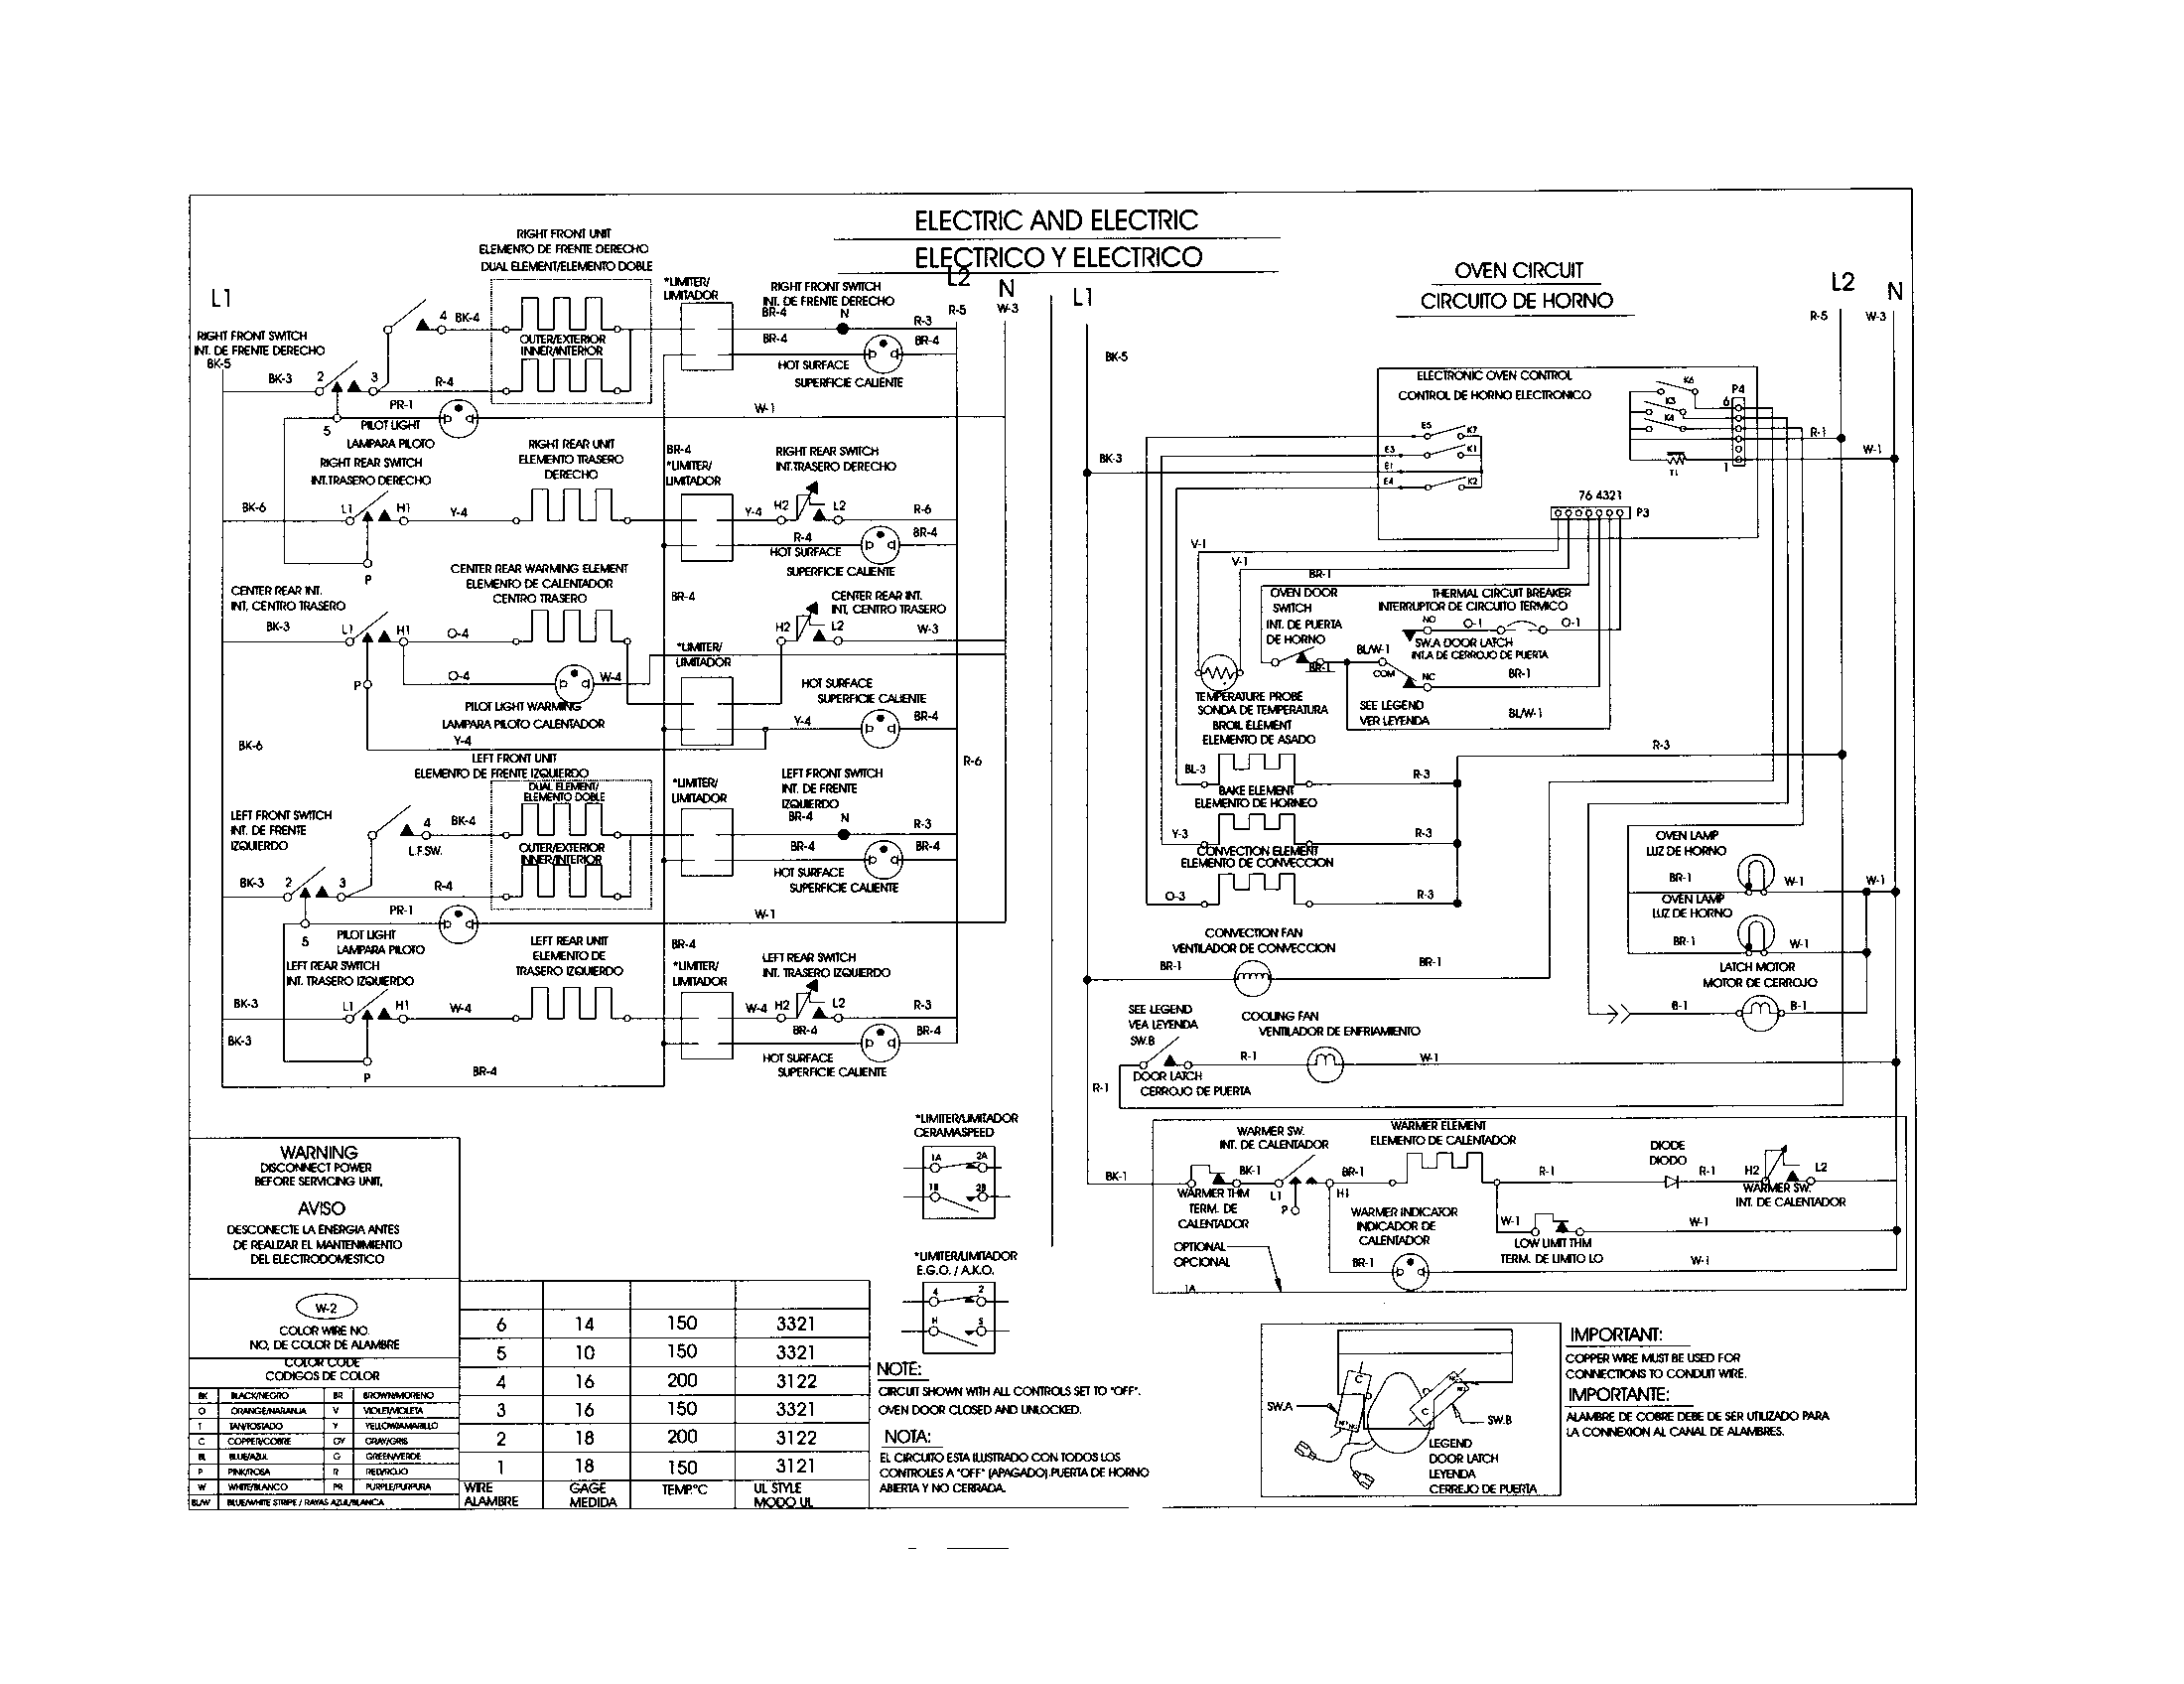 Wiring Diagram Kenmore Dishwasher - wiring diagrams schematics